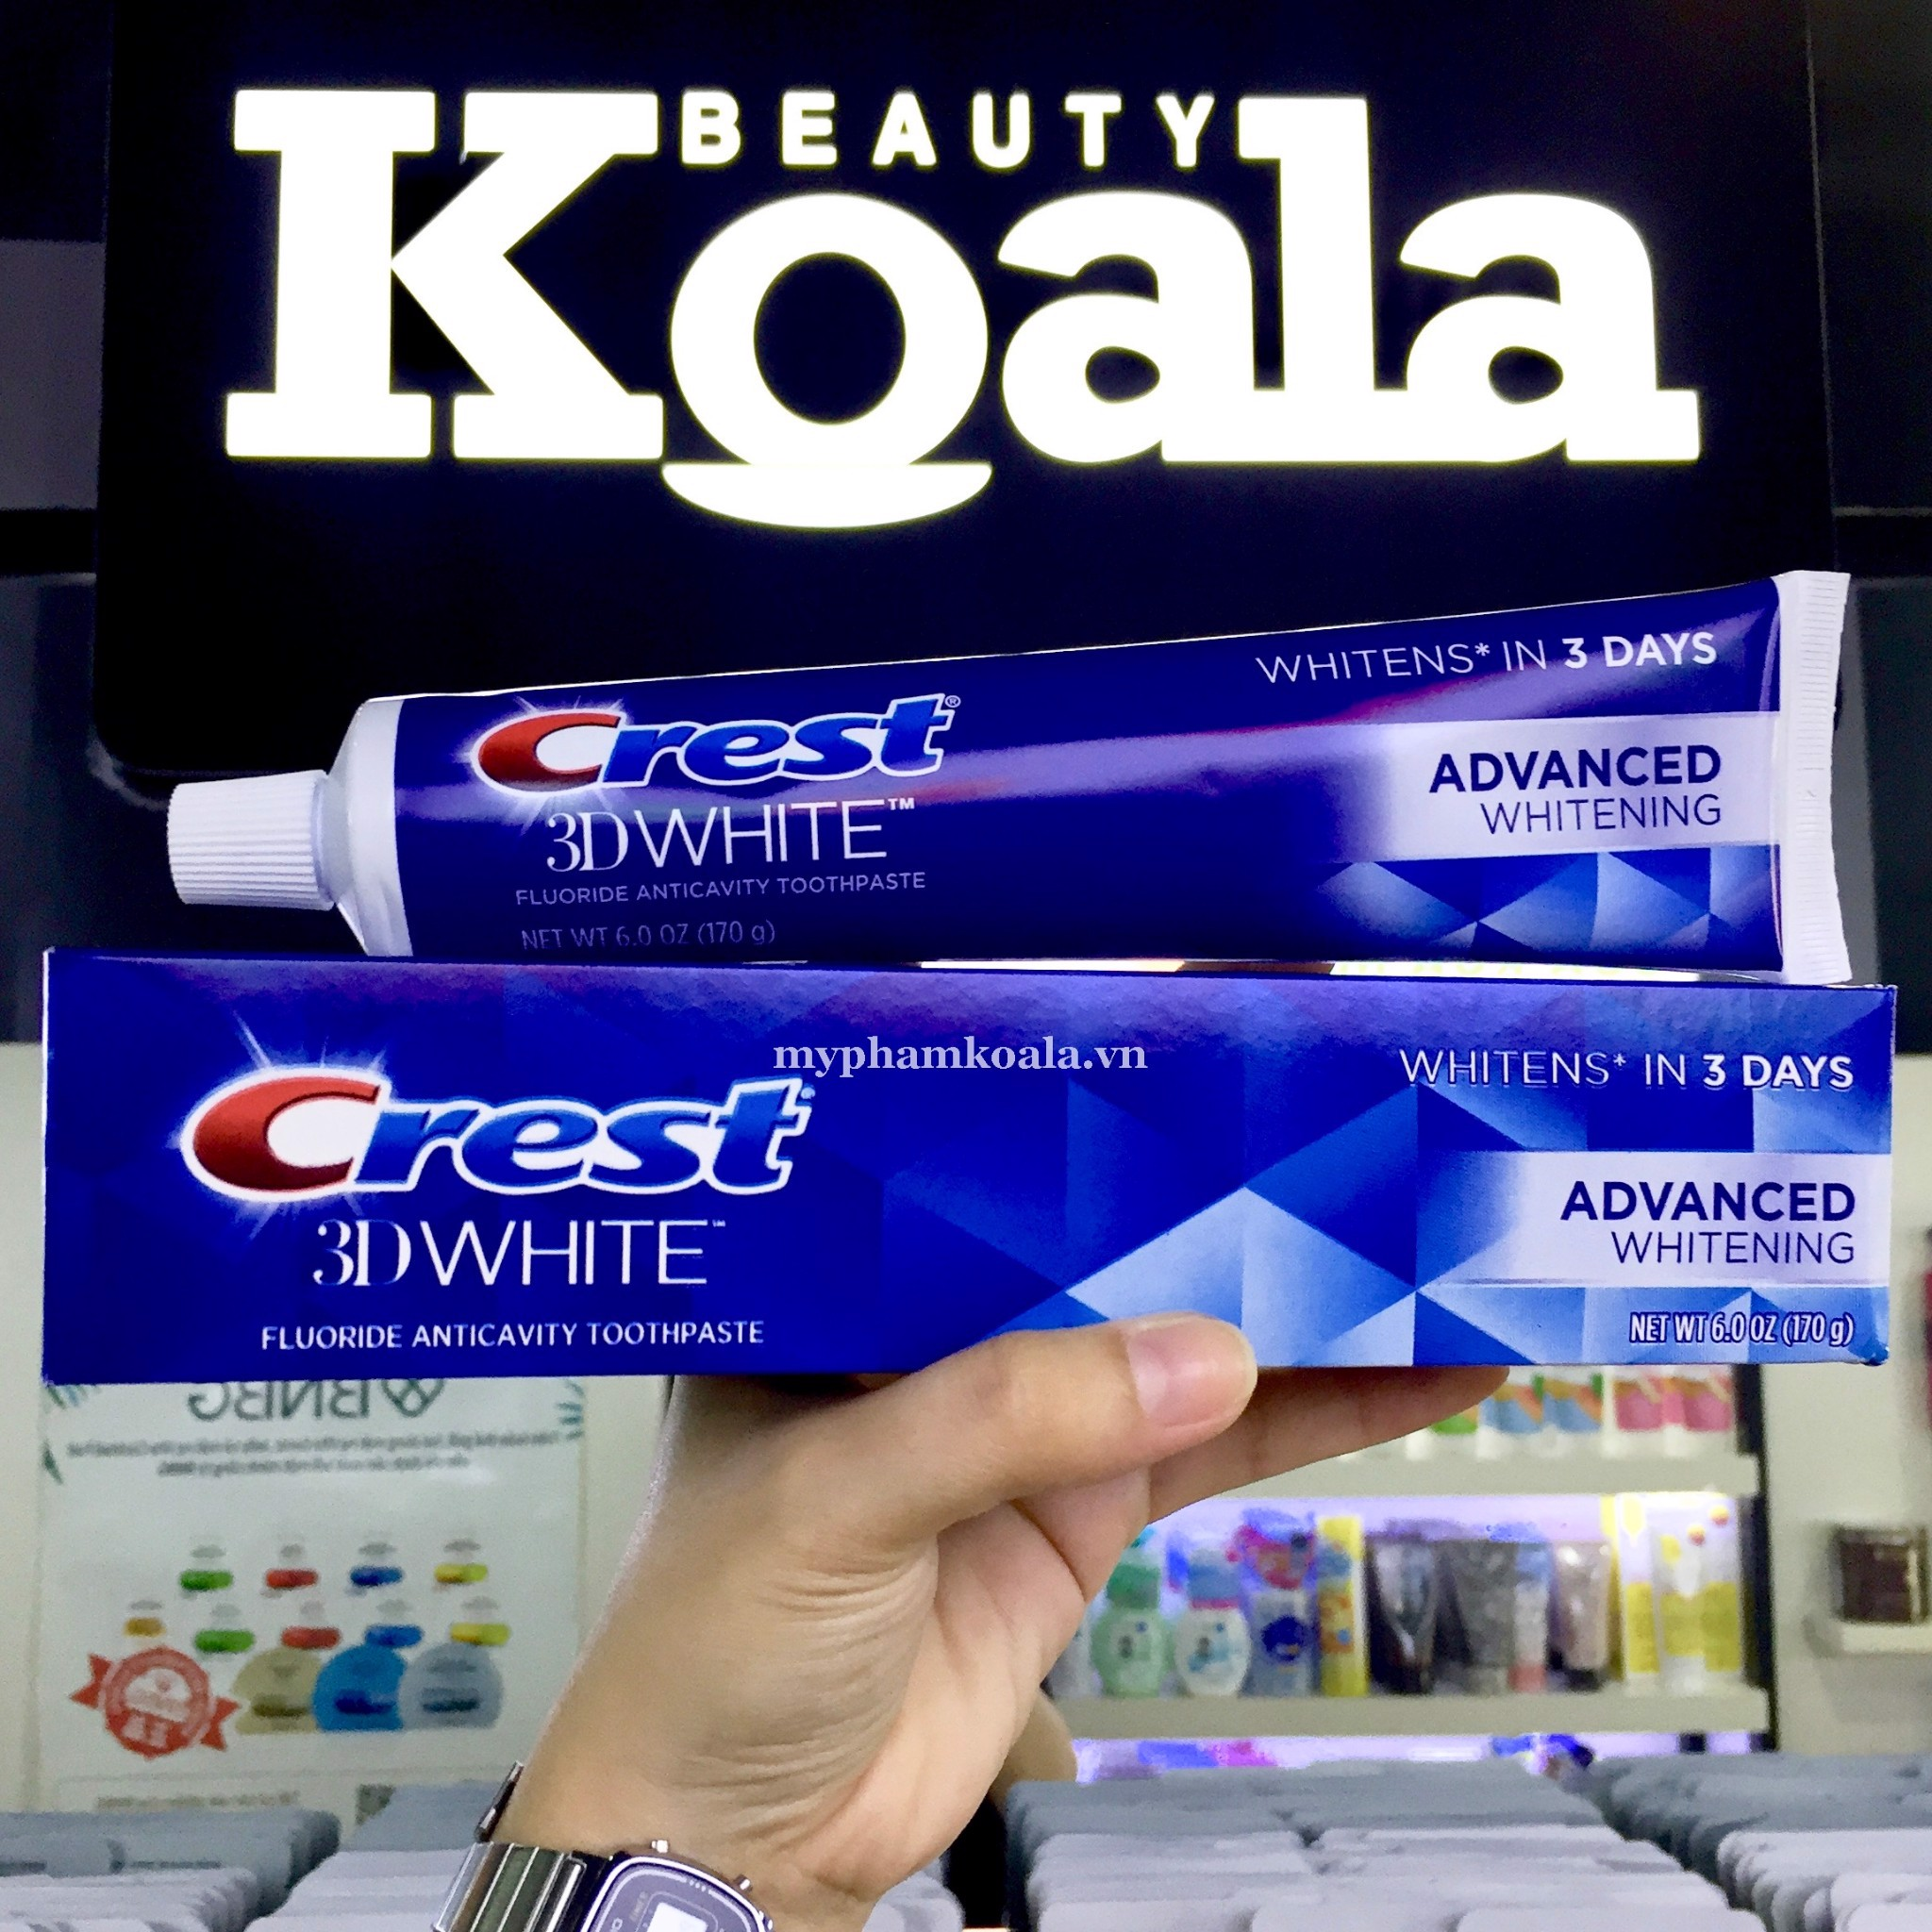 Kem Đánh Trắng Răng Crest 3D White Advanced Whitening Fluoride Anticavity Toothpaste 170gr